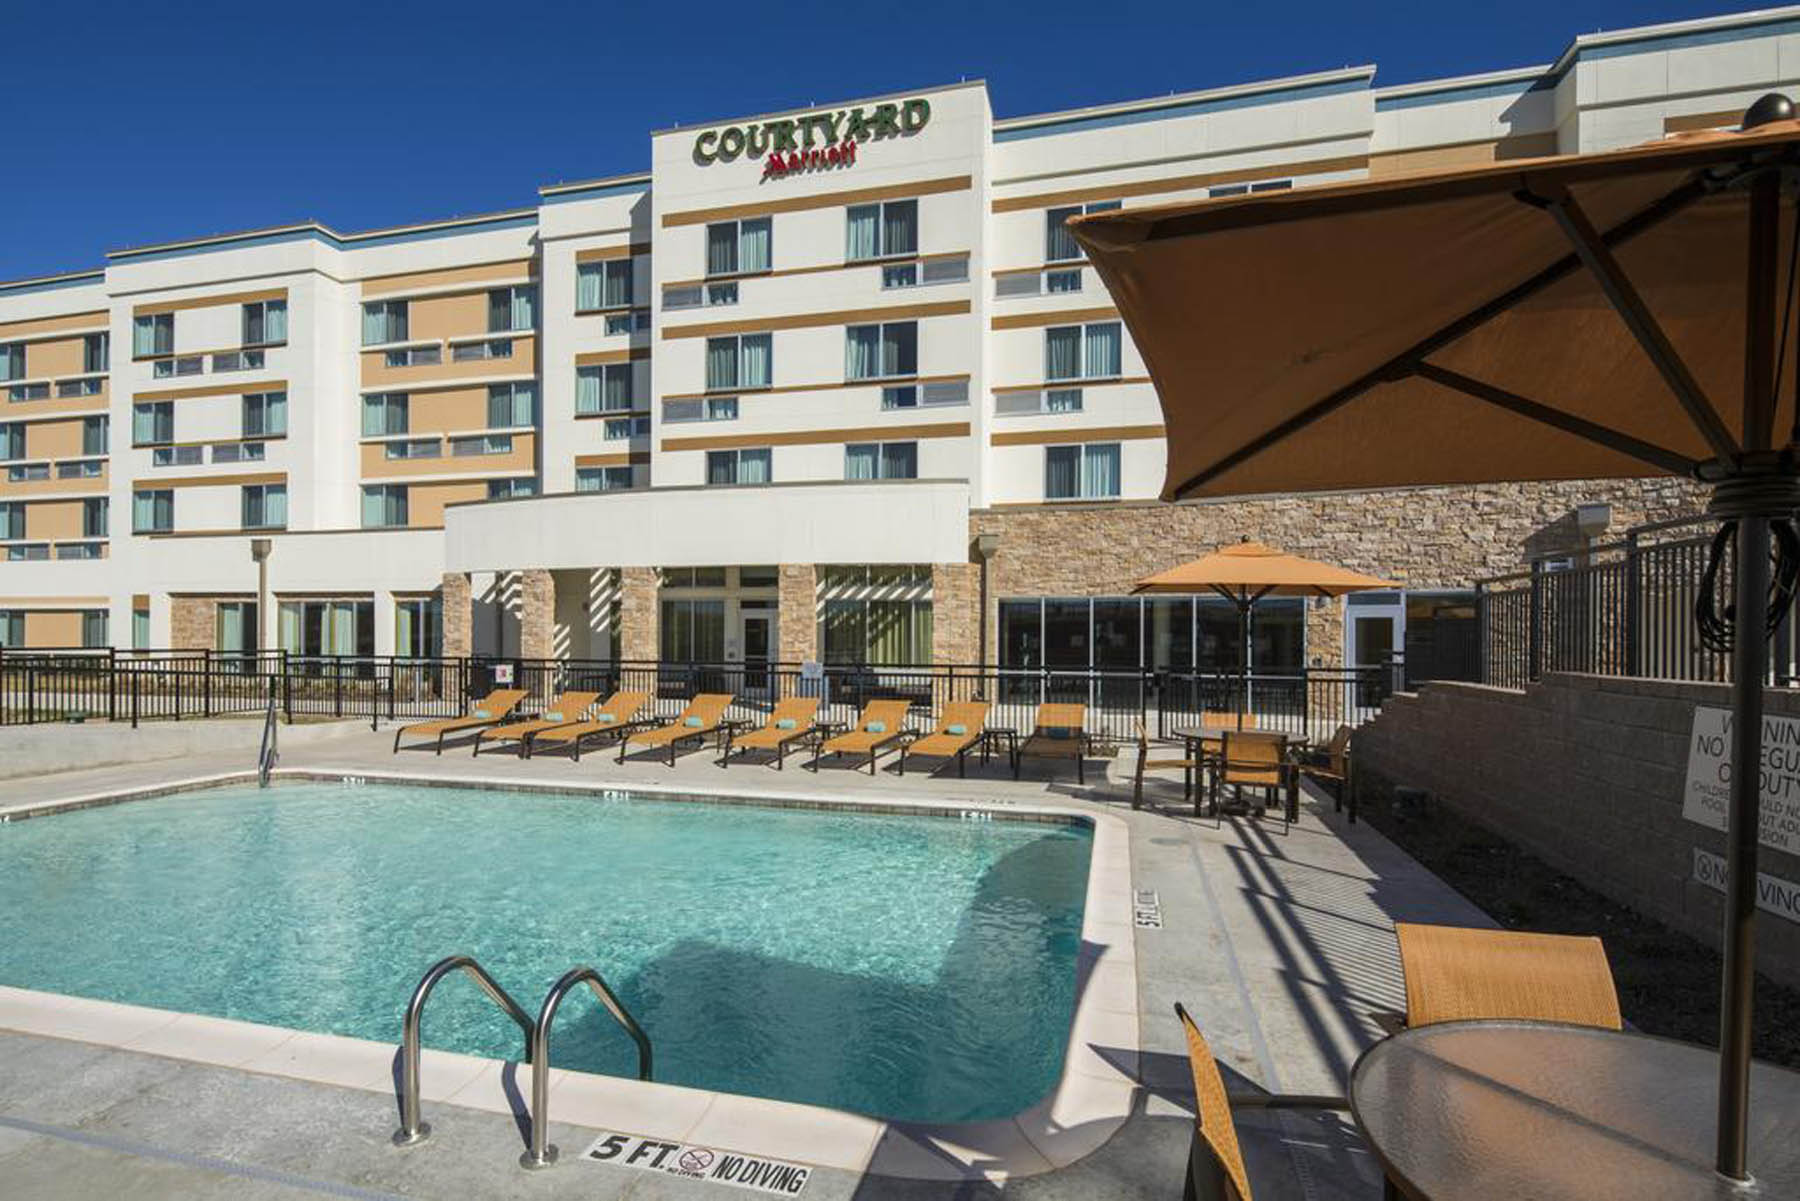 Courtyard by Marriott Midlothian TX Outdoor Pool